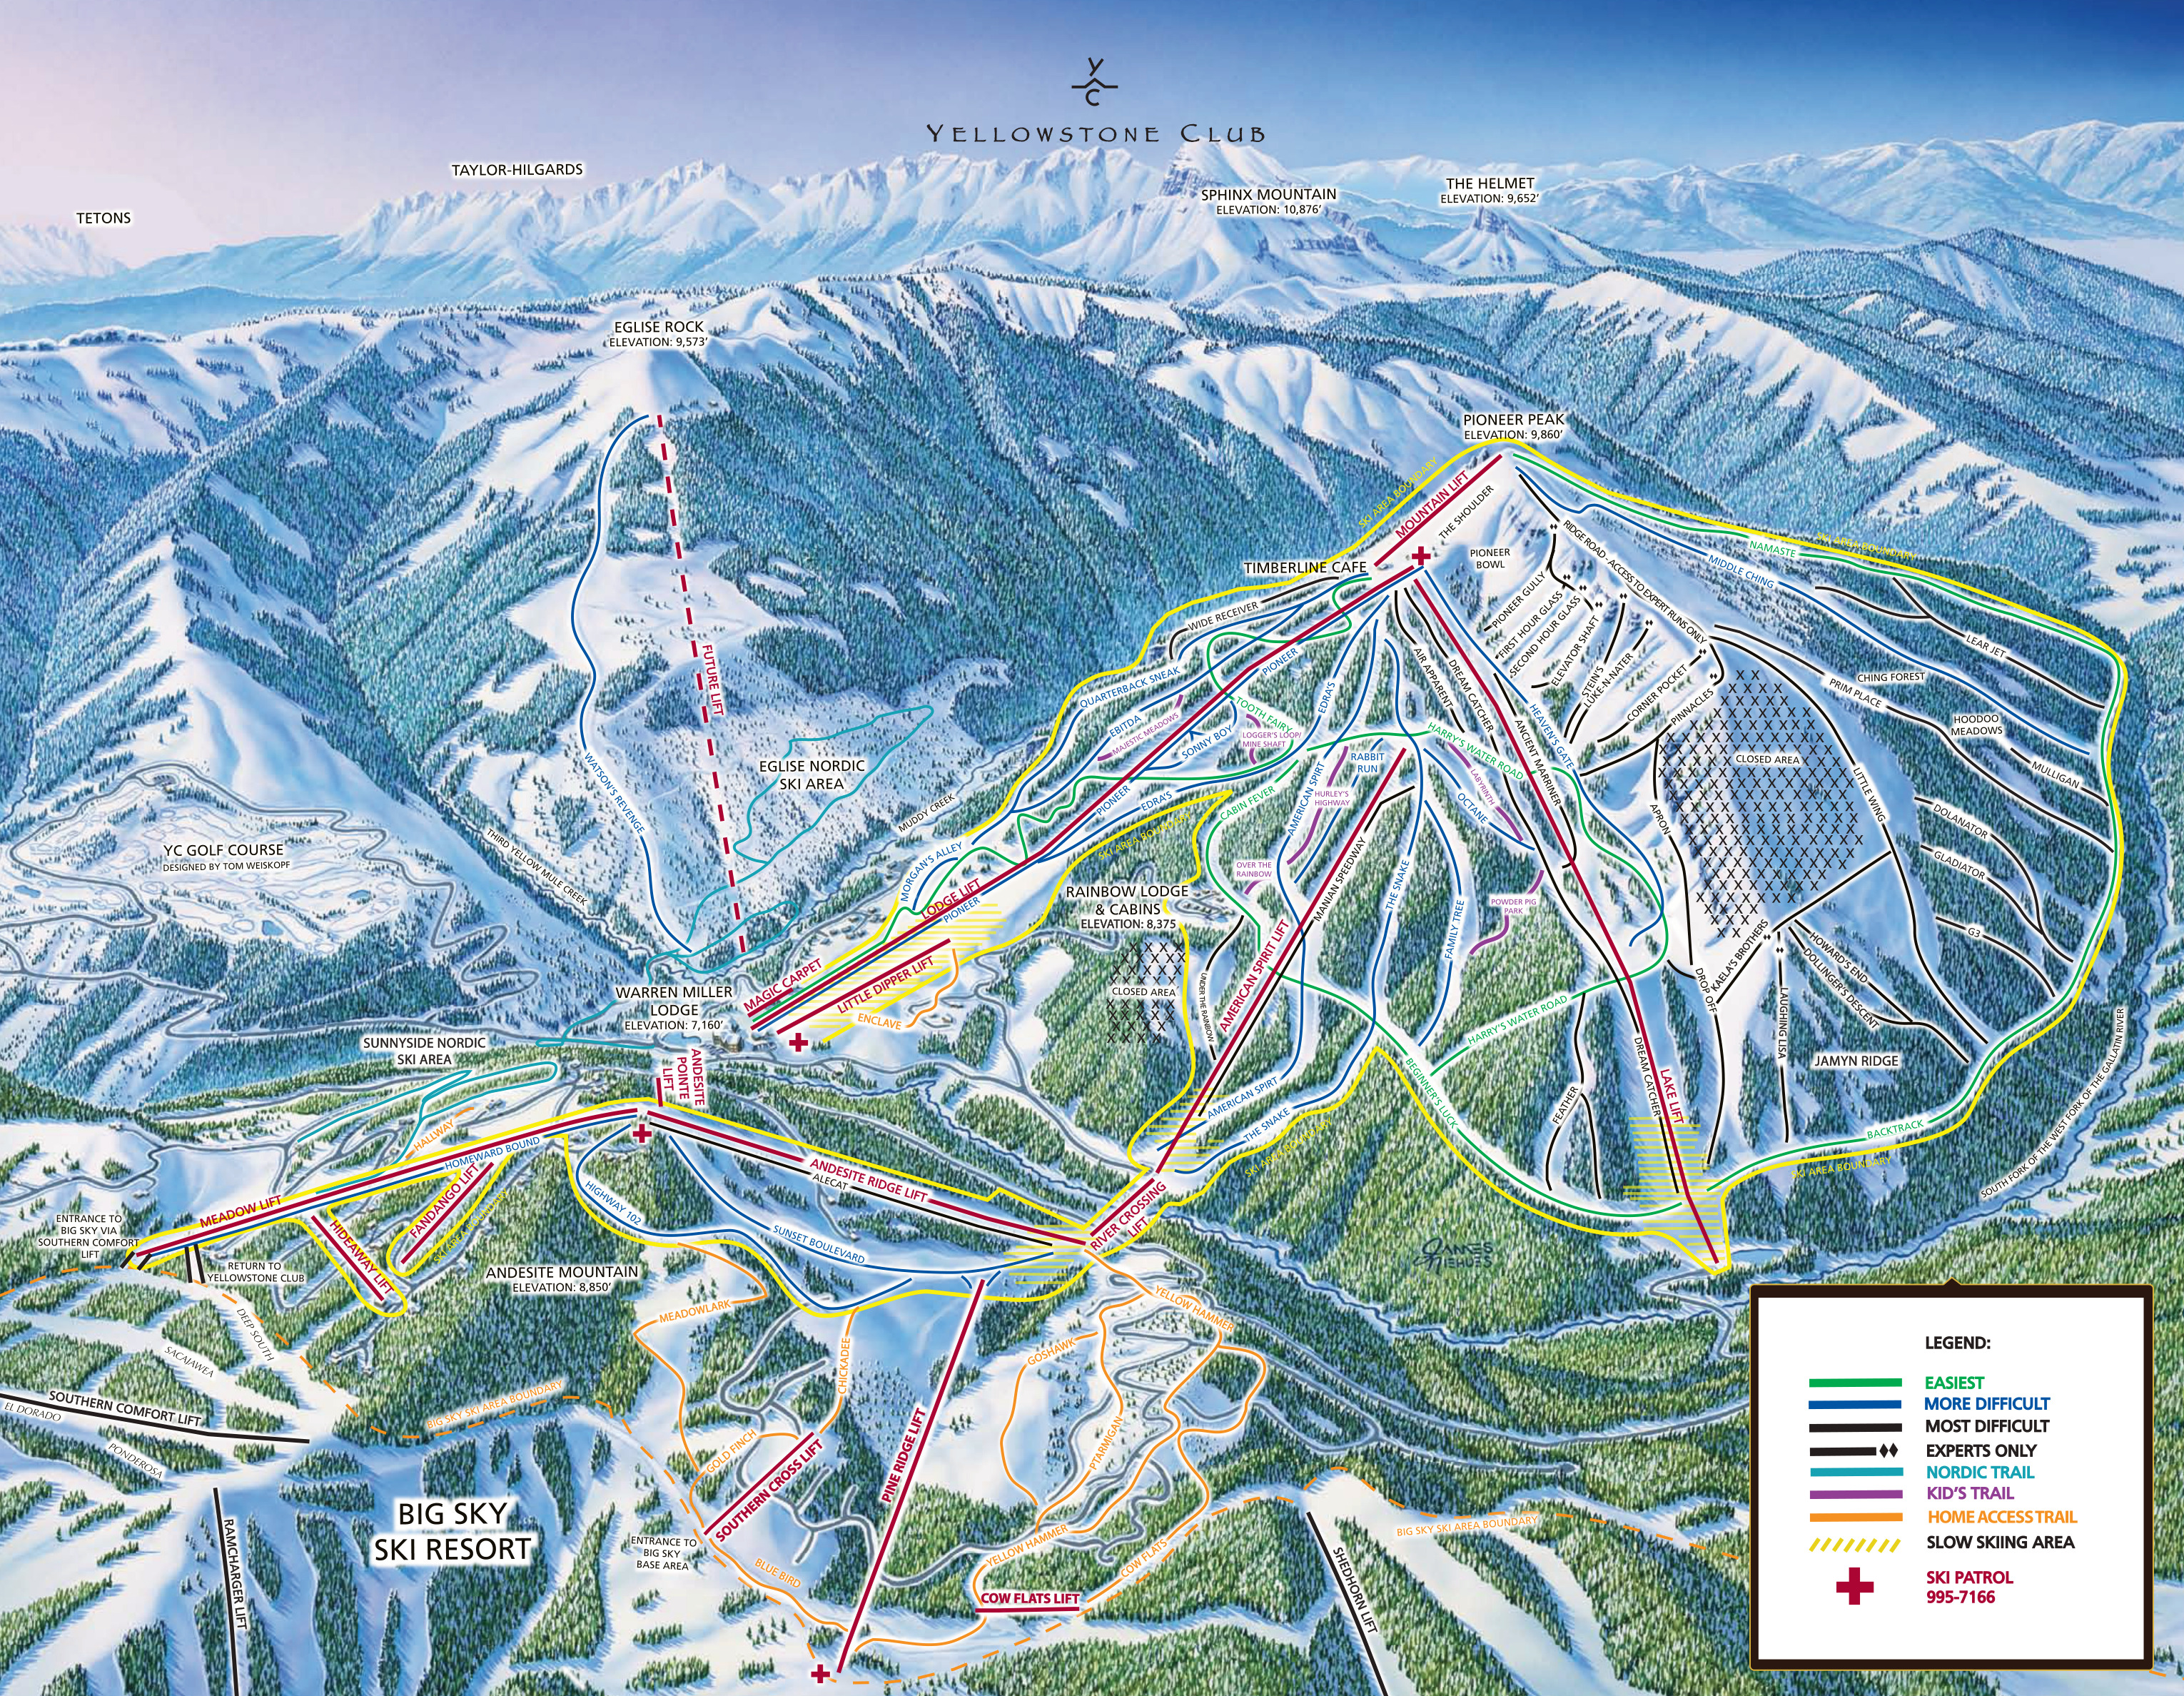 yellowstone club trail map with 1025 on Big Skymt Moonlight Basin Mt  bine To Form Largest Ski Resort In Usa furthermore Hot Girls Fishing furthermore Green Acres 59 National Parks Map further Largest National Parks In United States likewise 344936 Wiring Diagram Kudaki 250cc.